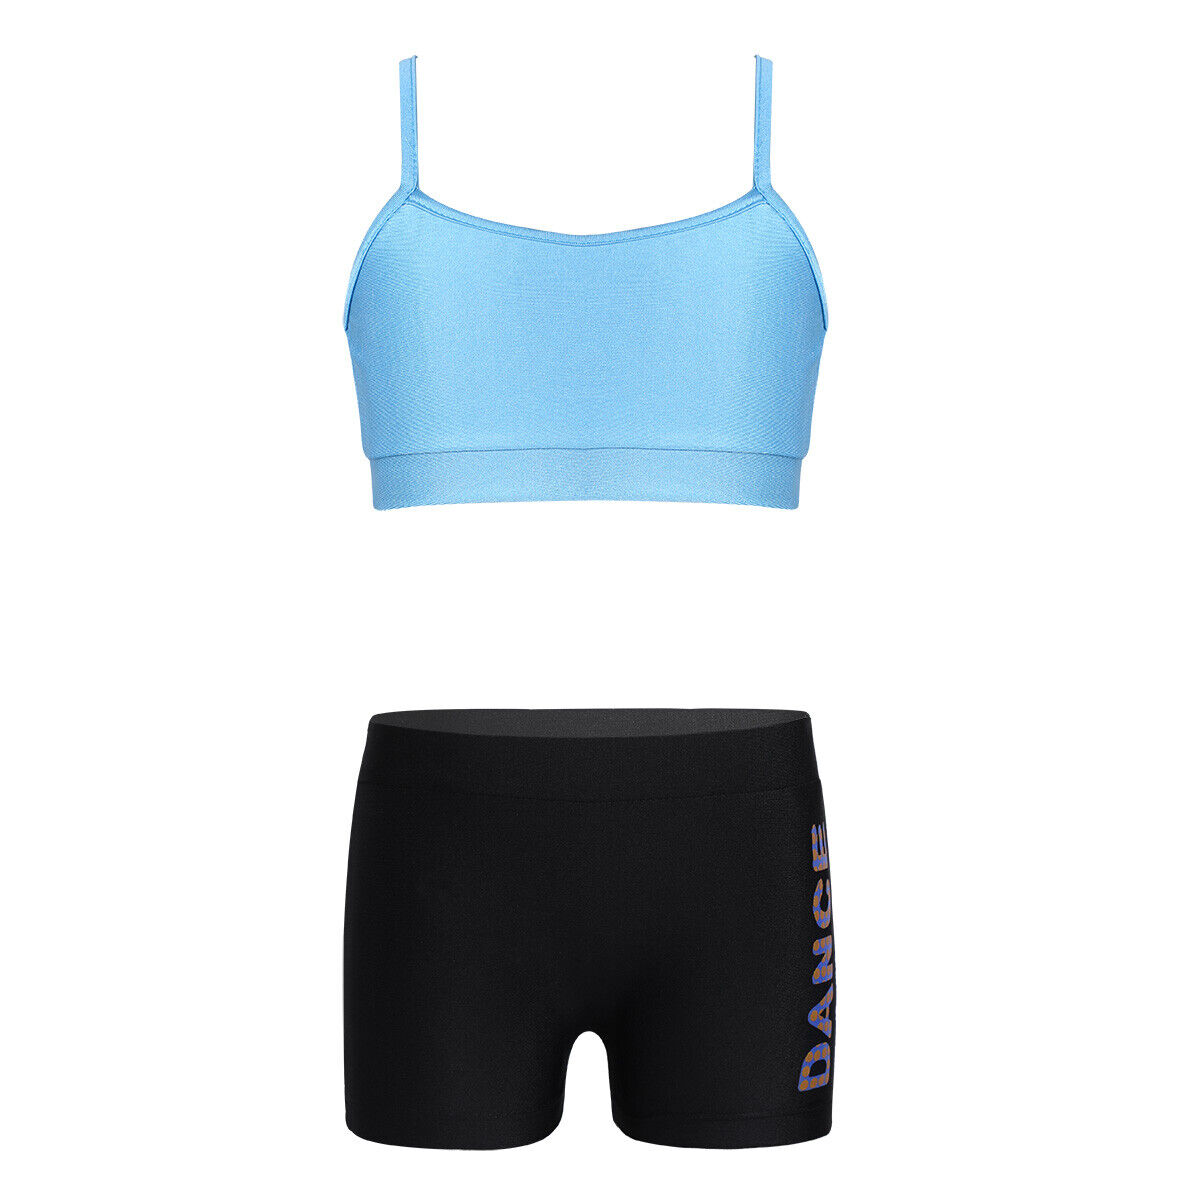 Kids Girls Sports Suit Tank Top+Shorts Ballet Dance Gym Workout Tankini Outfits